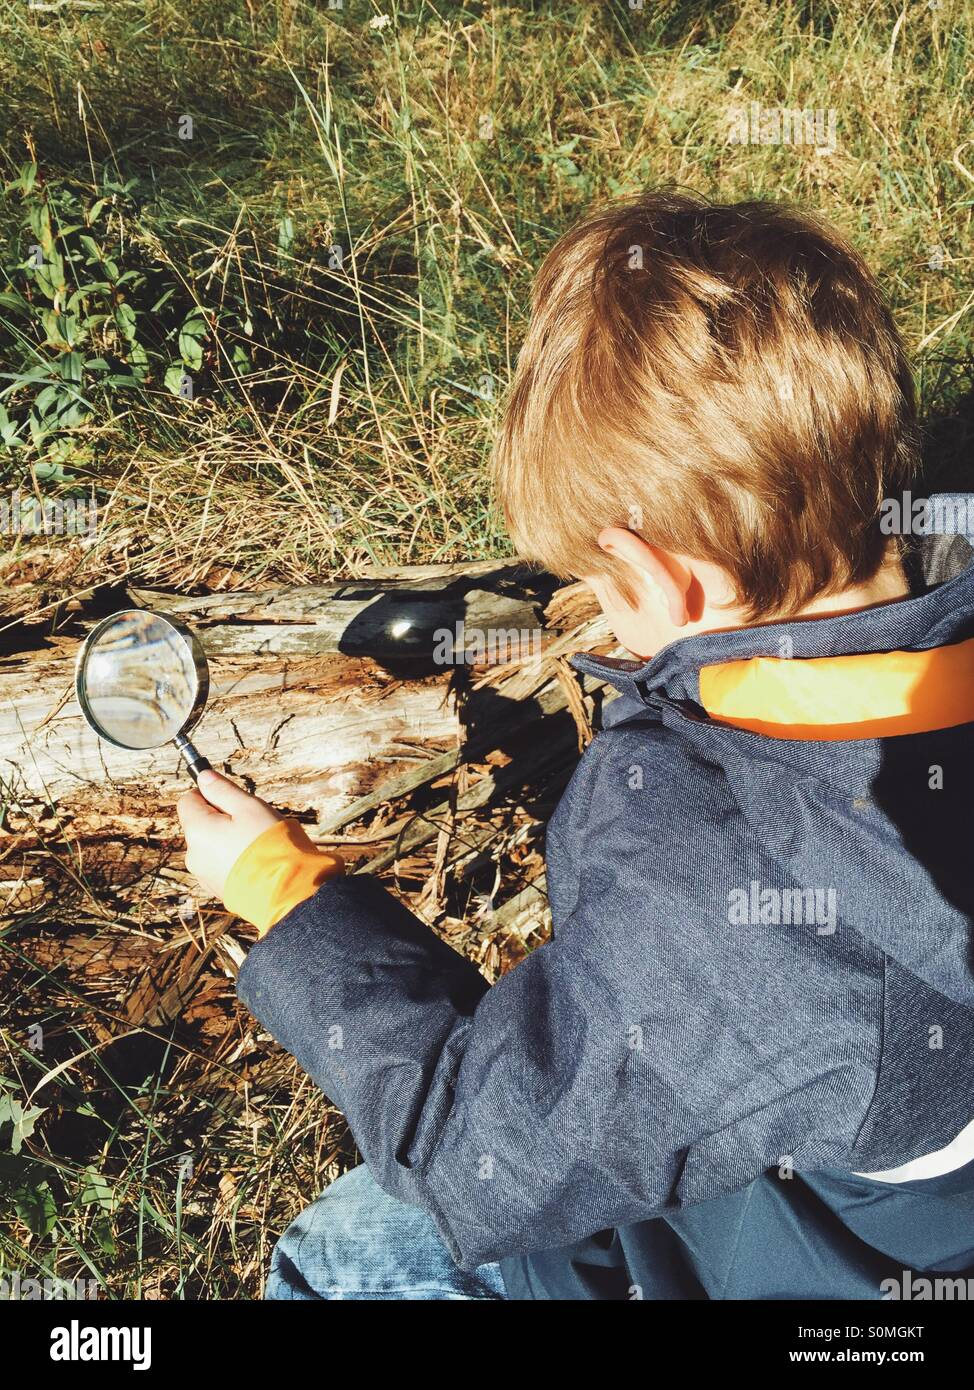 Five year old boy burning wood with a loupe - Stock Image